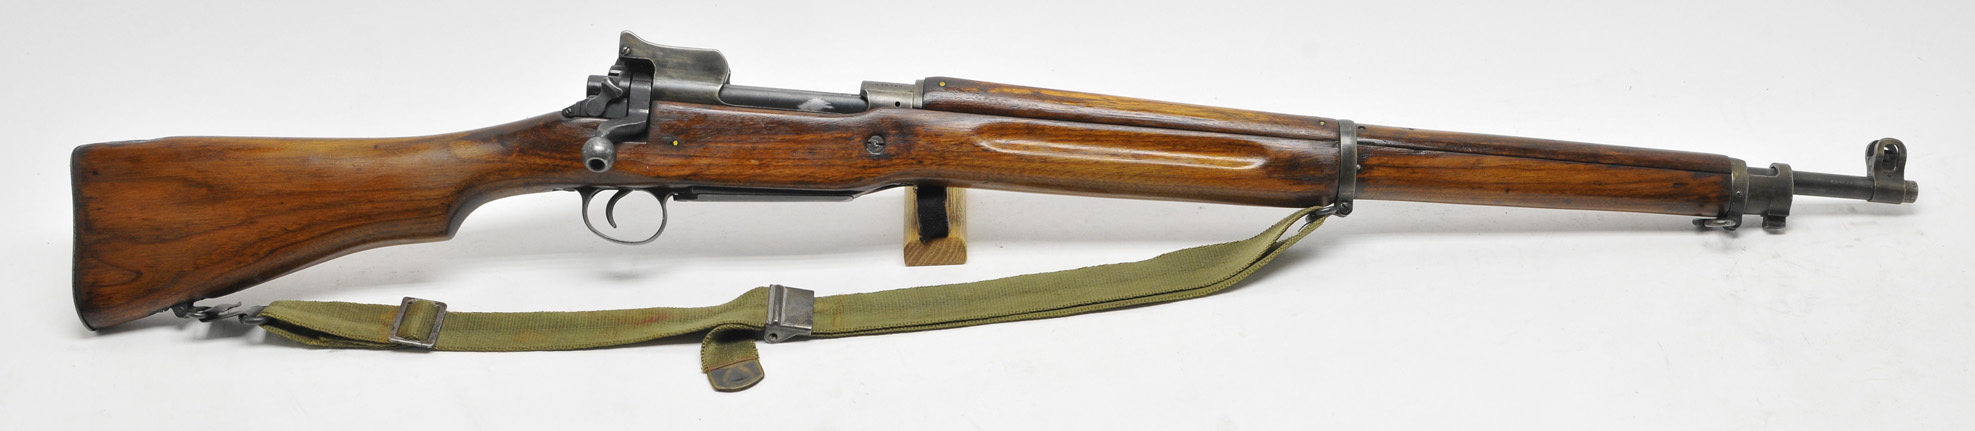 m1917 eddystone custom shop inc